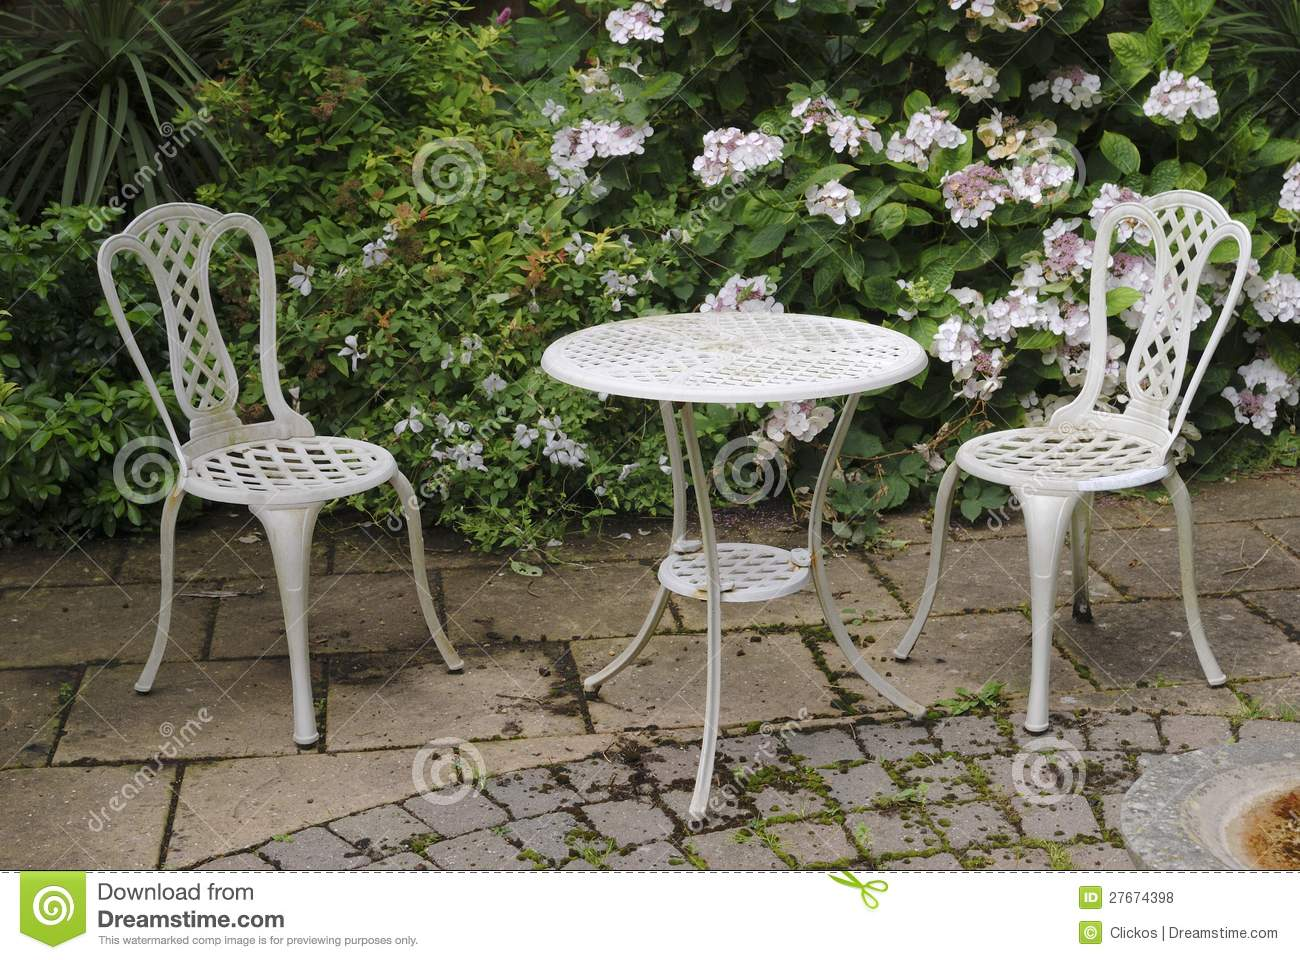 garden table and chairs bush garden hydrangea patio table ironwork paving plant flower chairless UUZZGTW